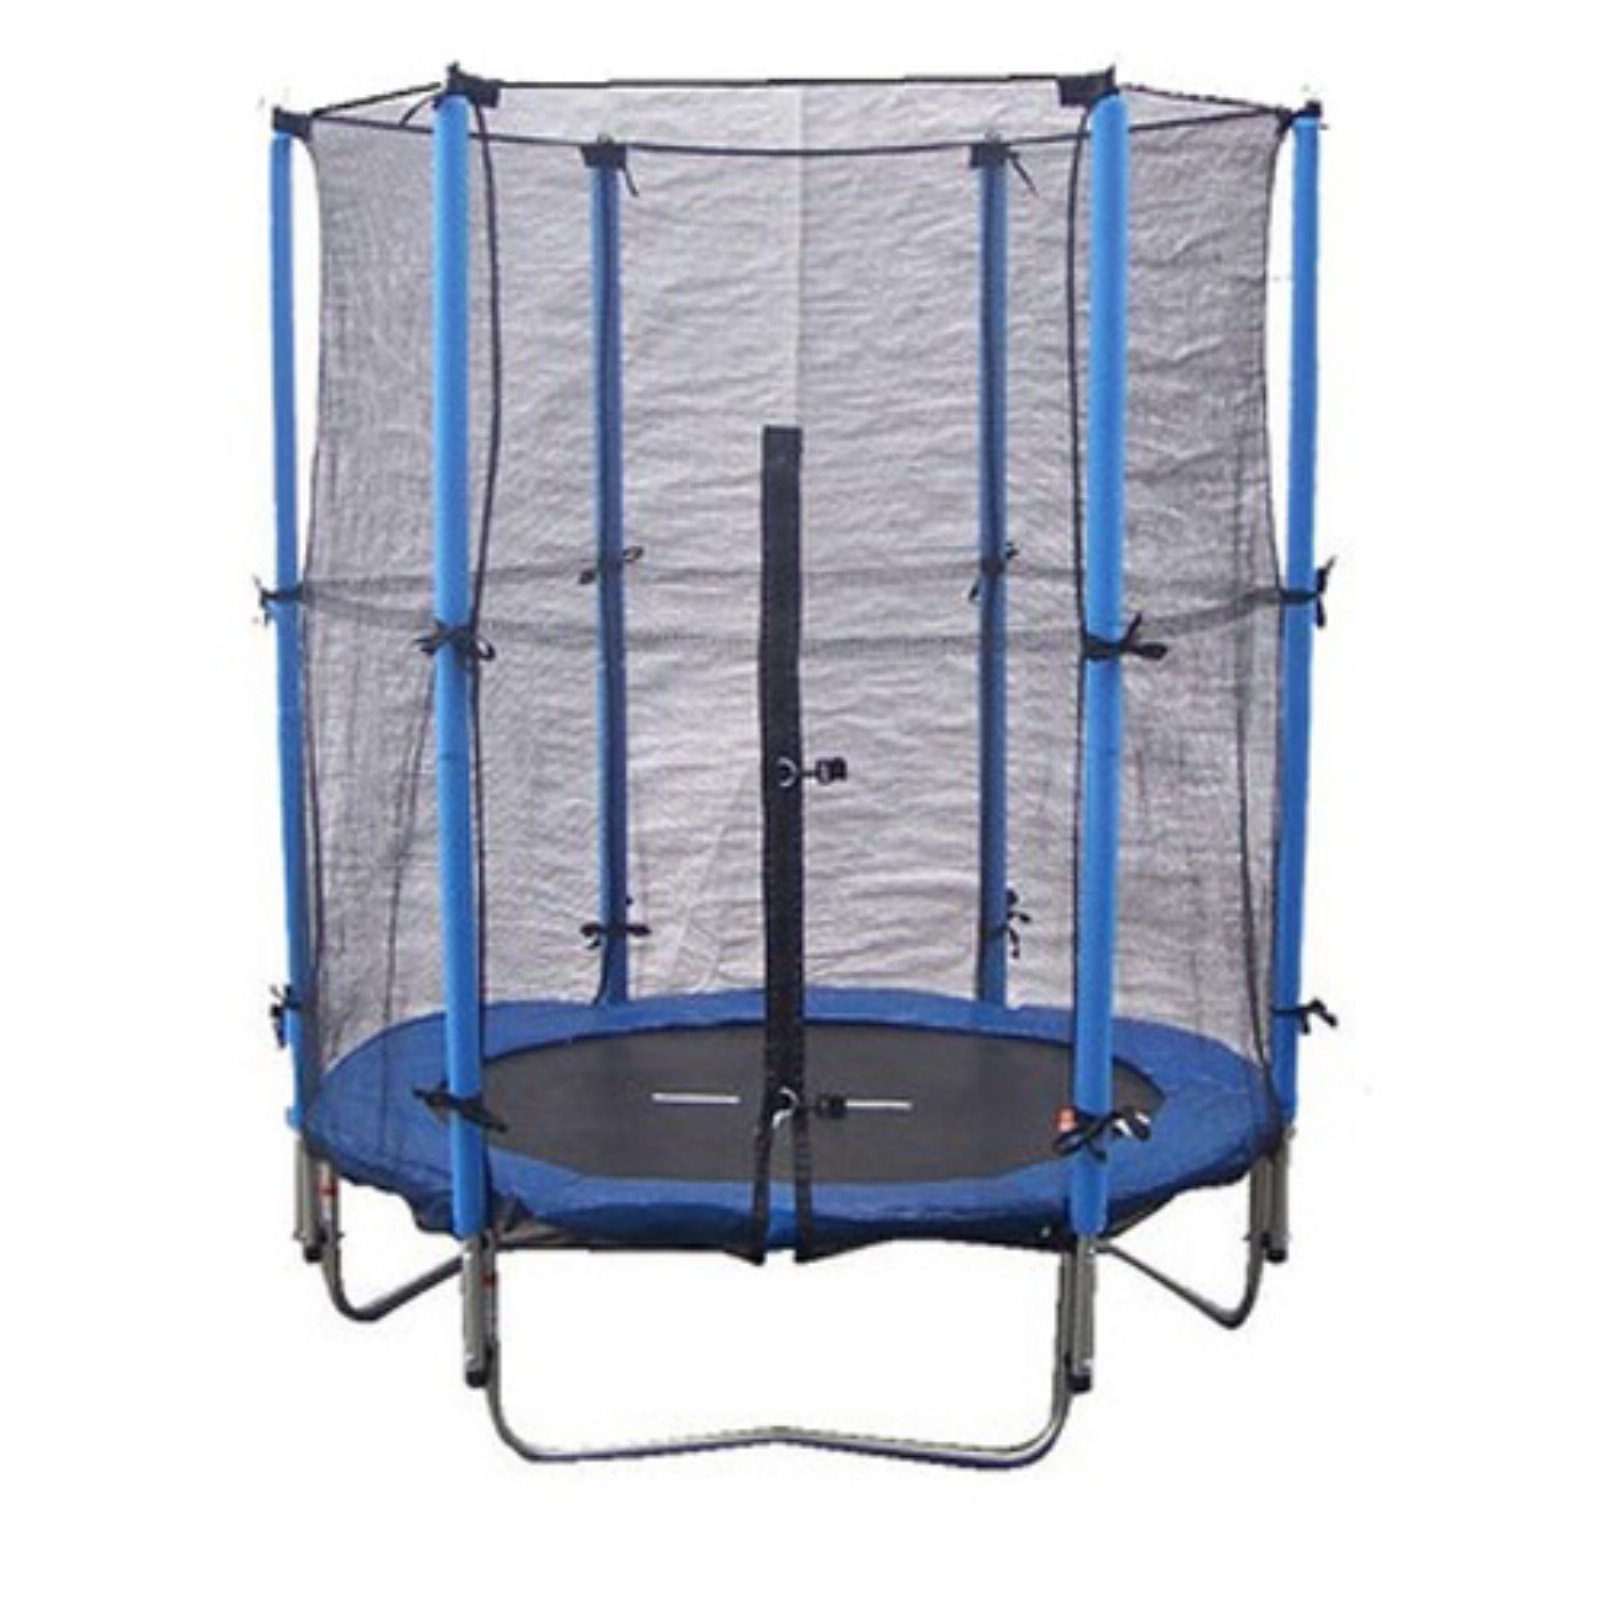 Super Jumper 4.5 ft. Trampoline Combo